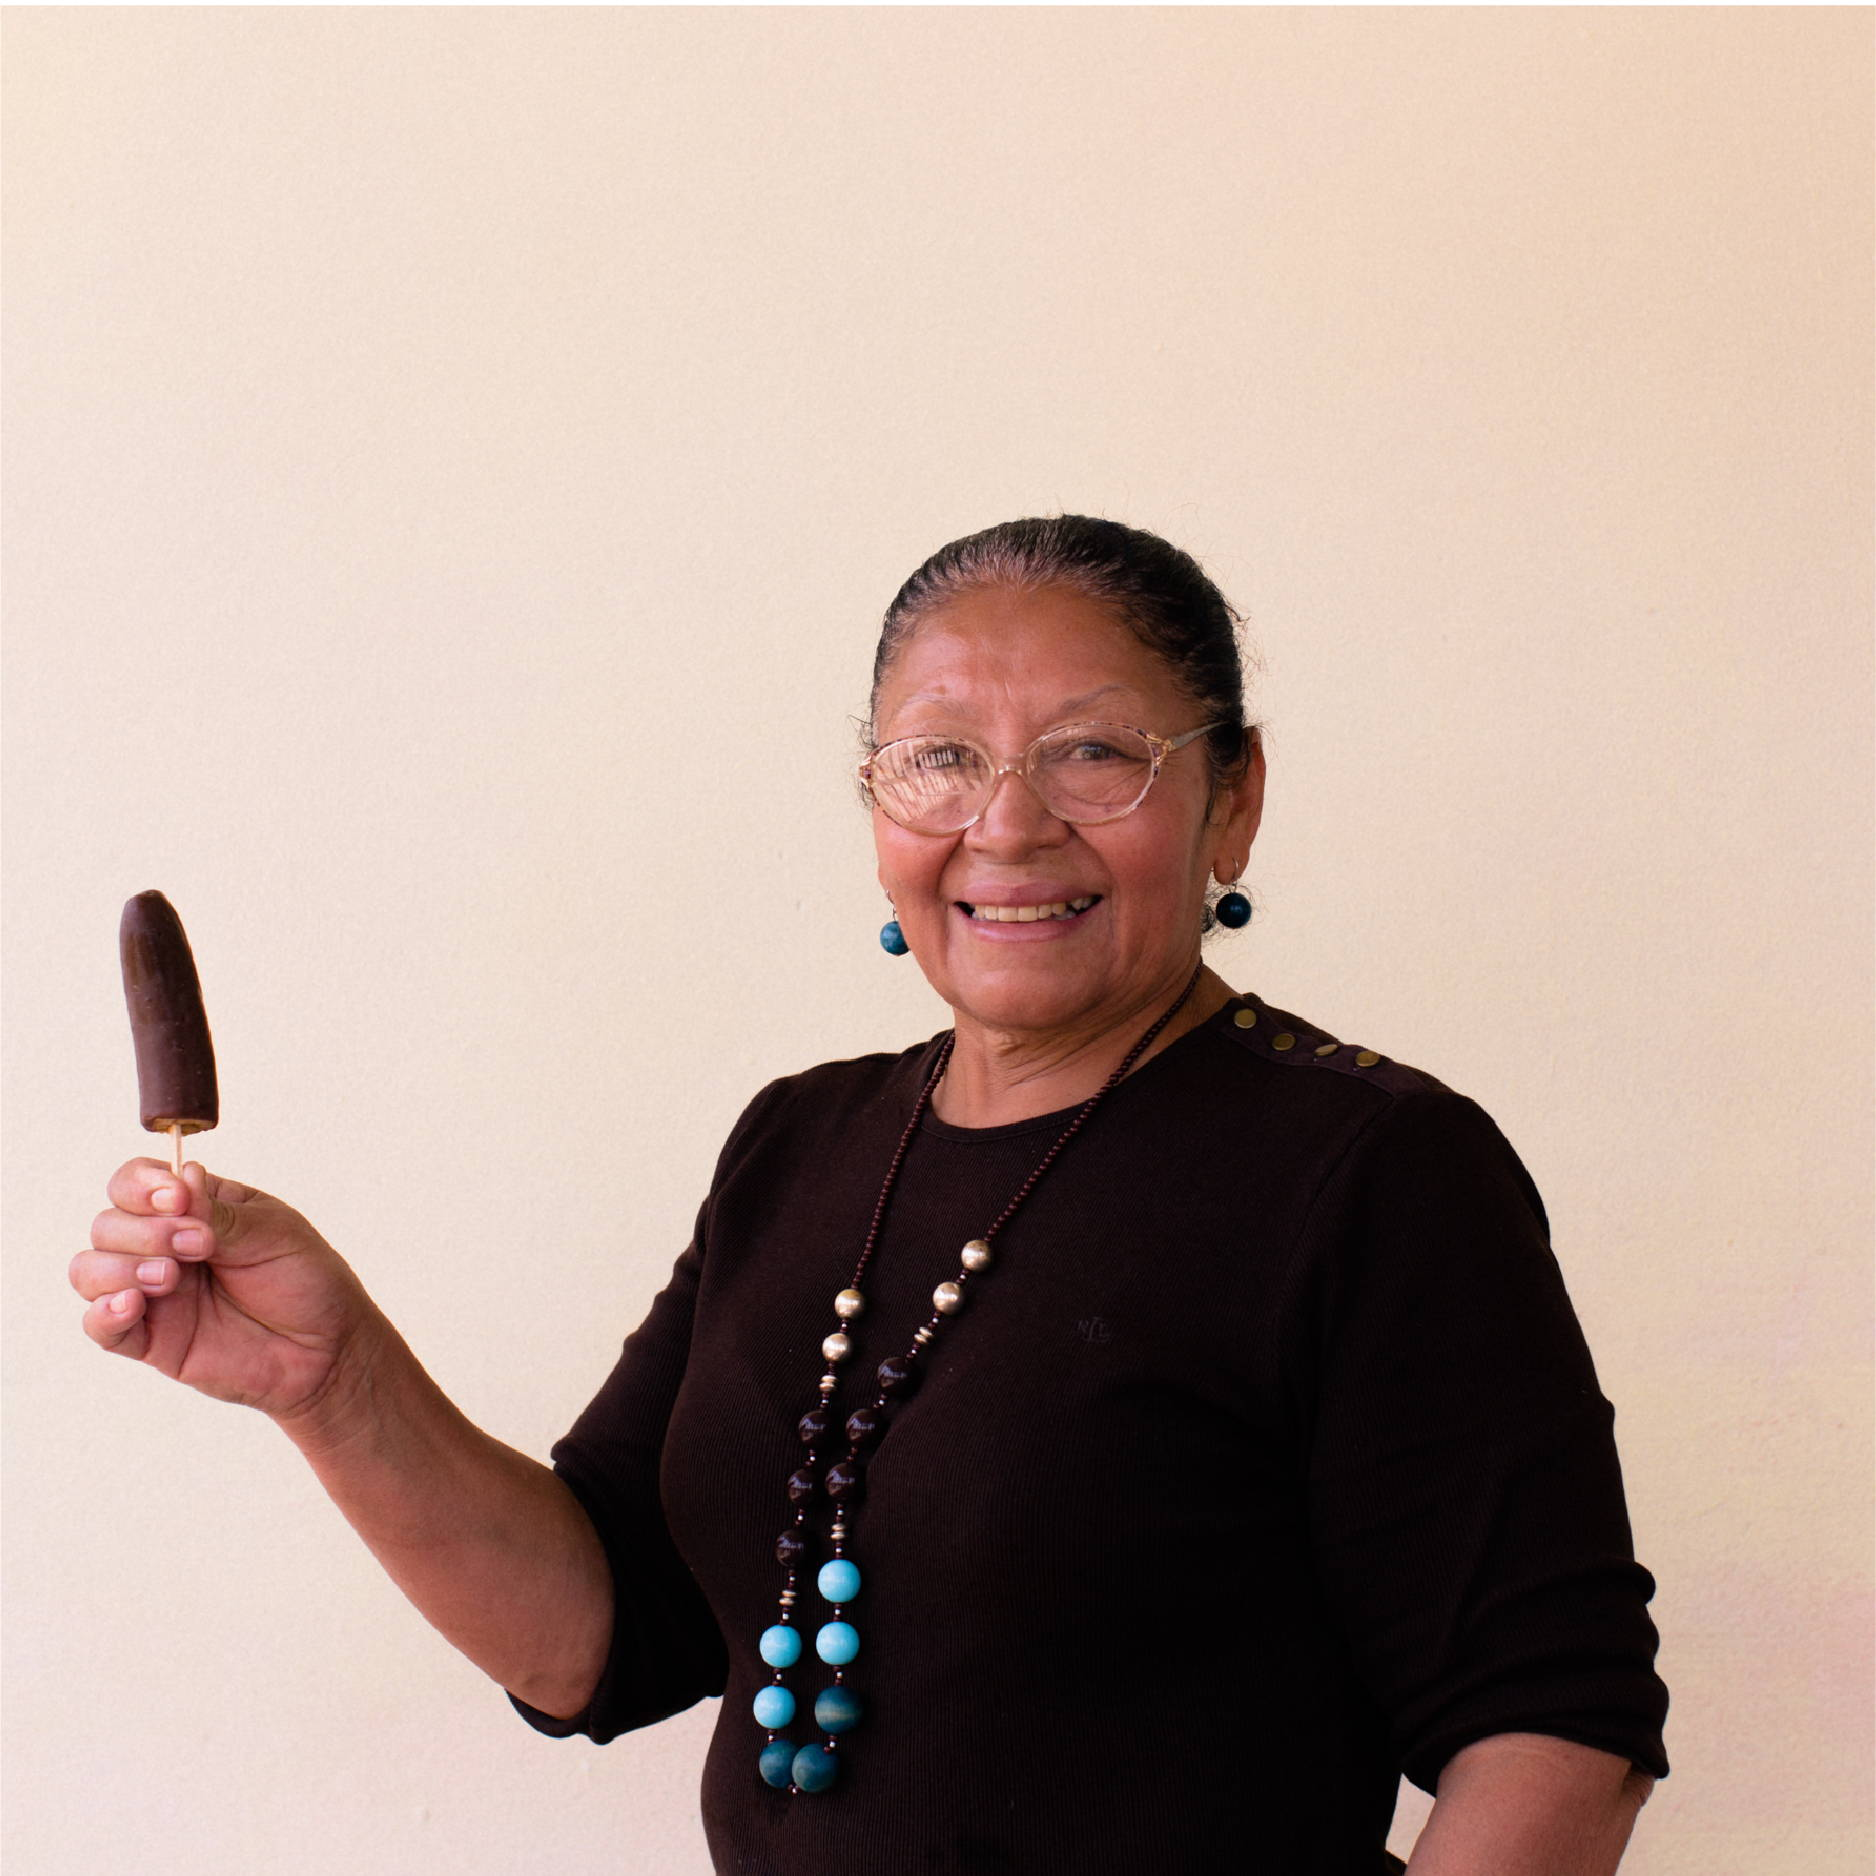 A Honduran woman stands and smiles while holding up her homemade chocolate covered banana on a stick.